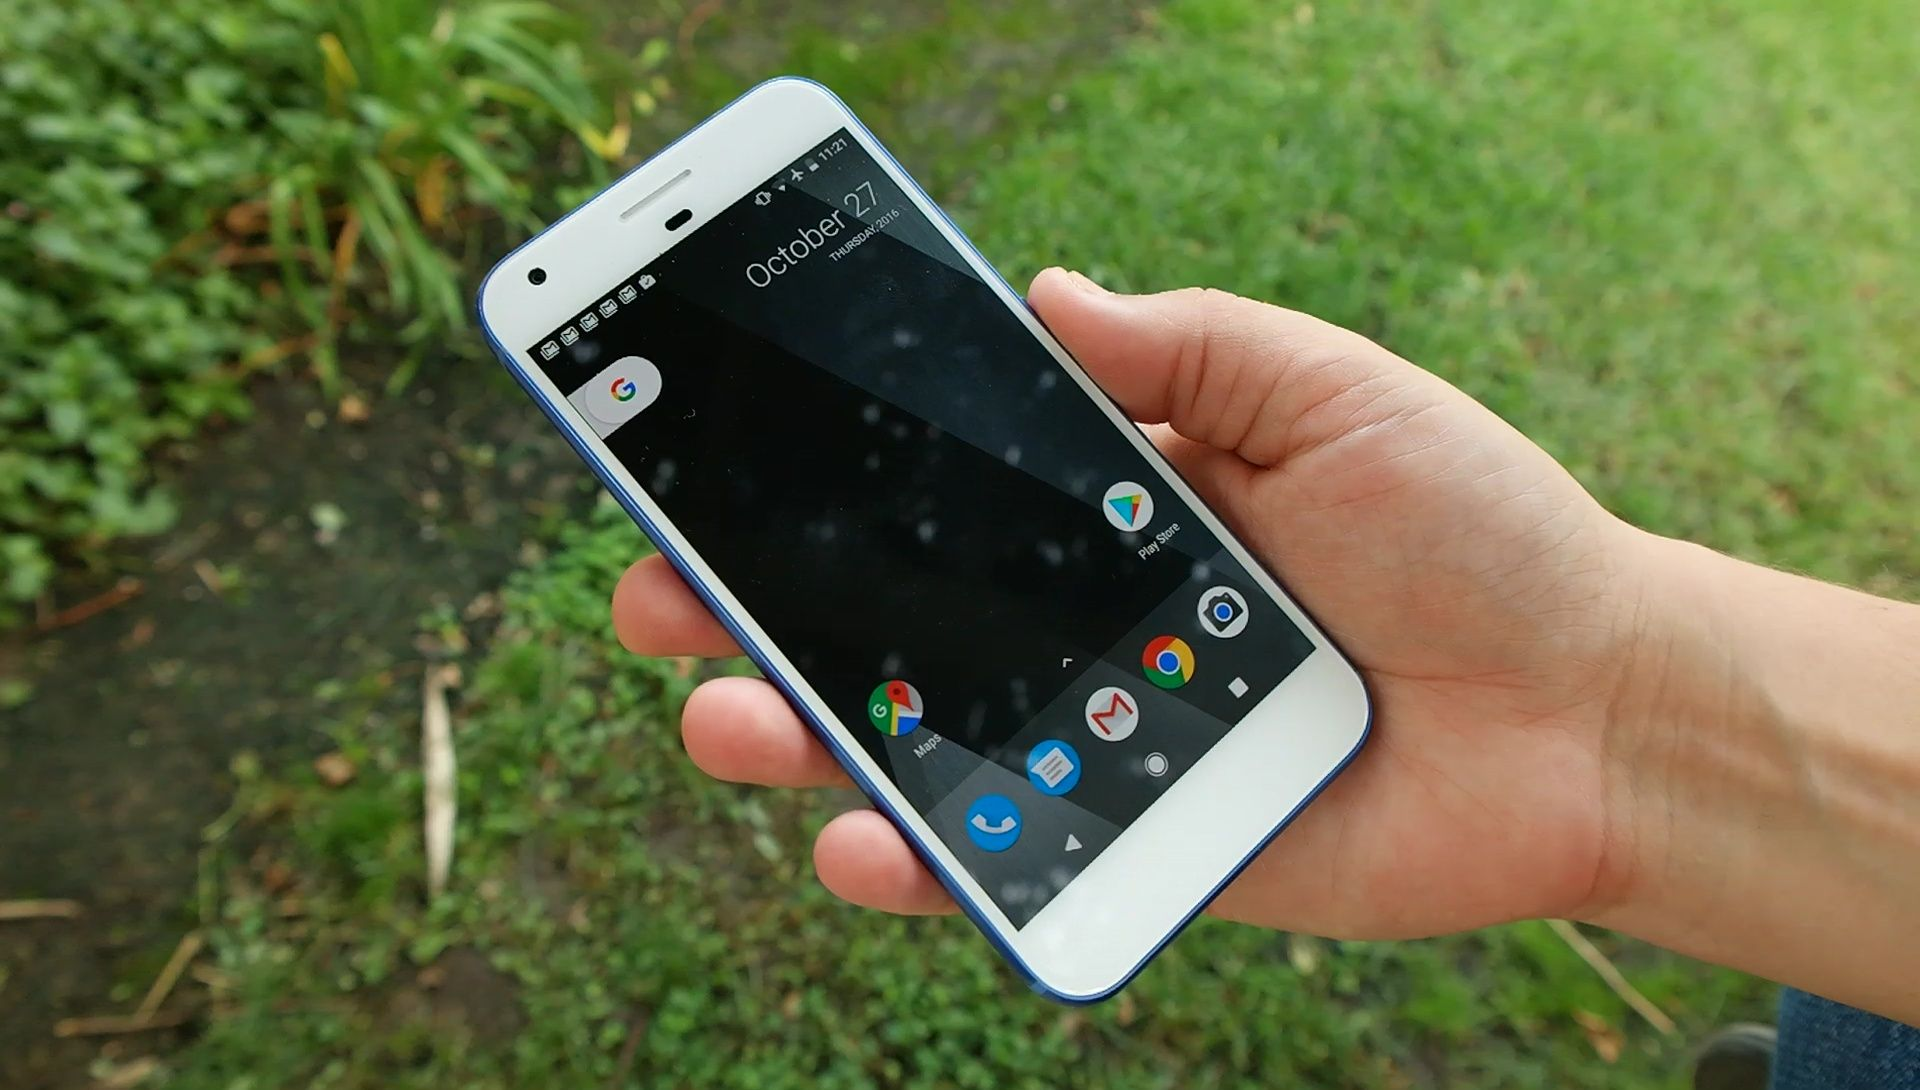 Google wants LG s curved OLED screens on the Pixel 2 or 3